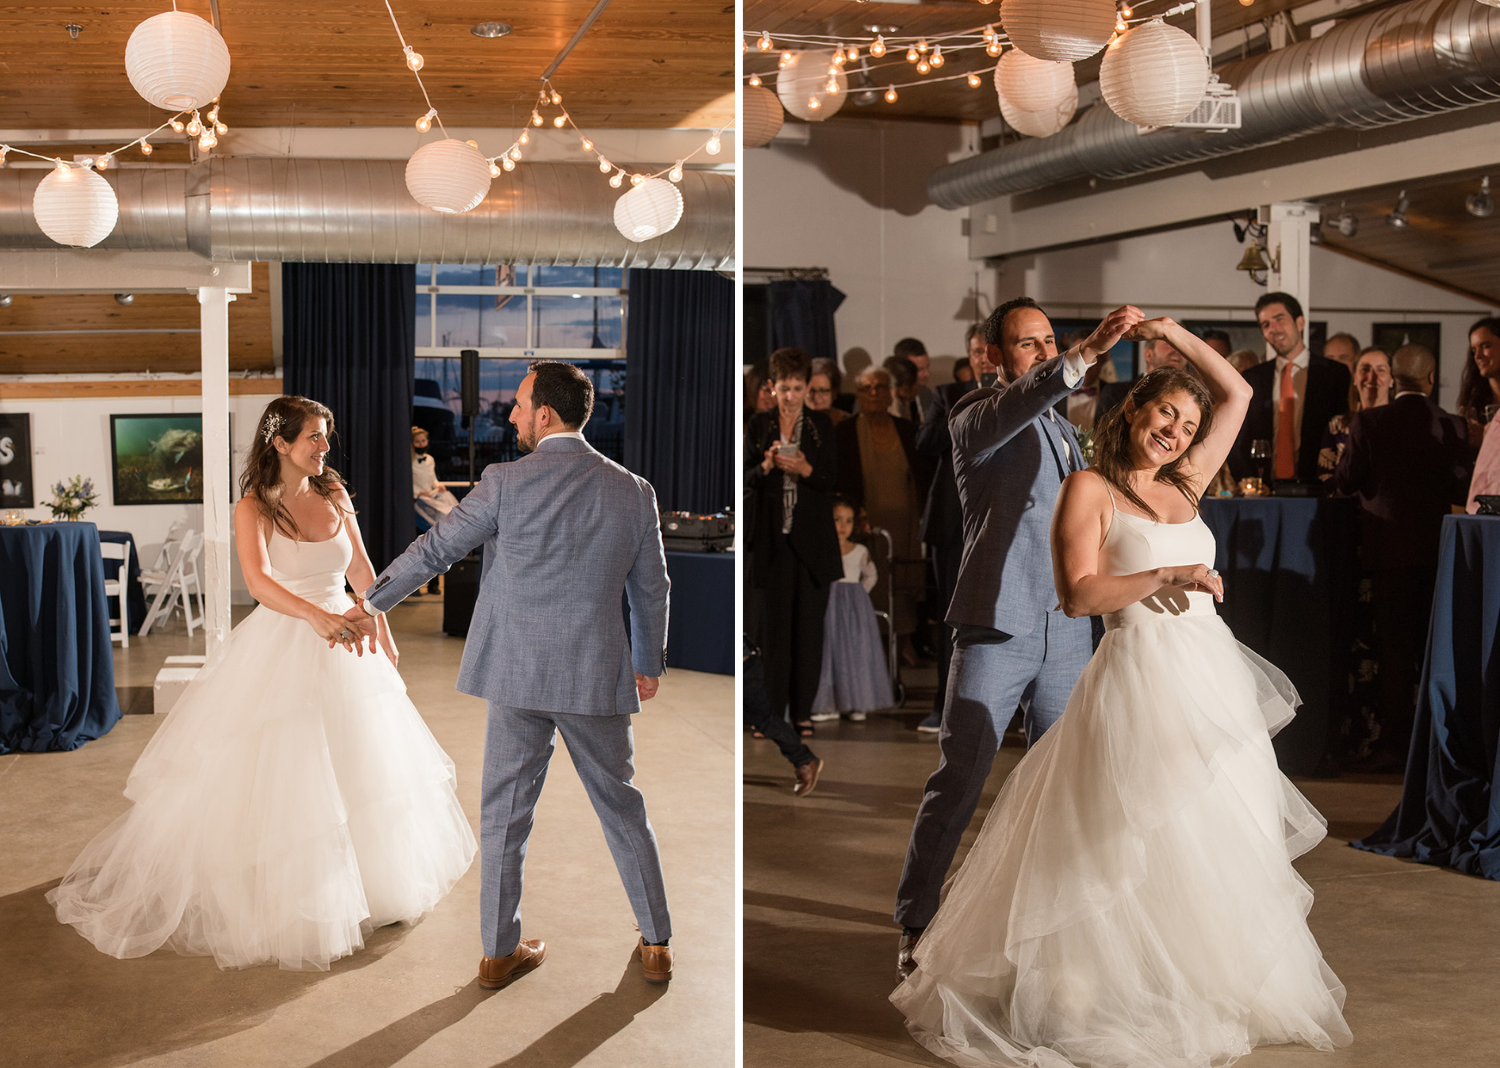 bride and groom share their first dance!